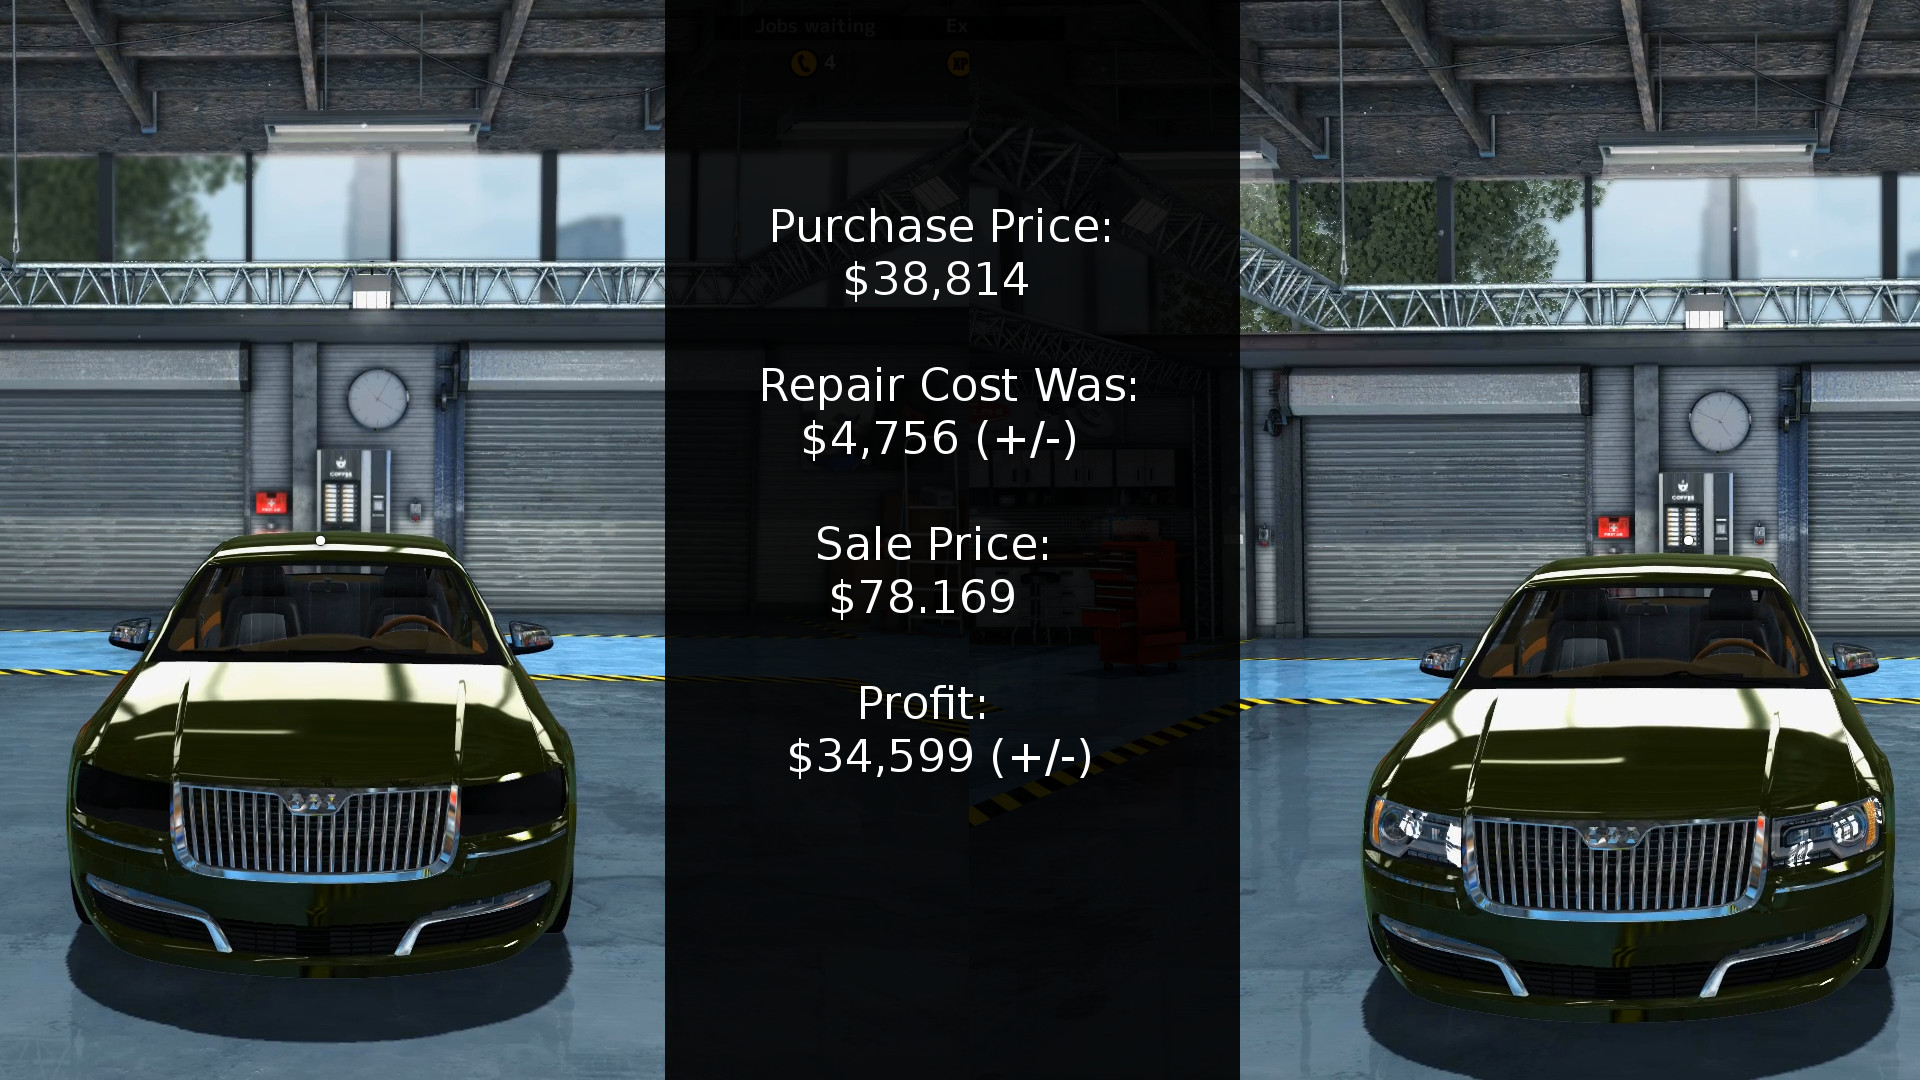 Here we have the numbers for this complete rebuild of a Mayen M8 from Car Mechanic Simulator 2015. along with before and after images of the front of the vehicle.